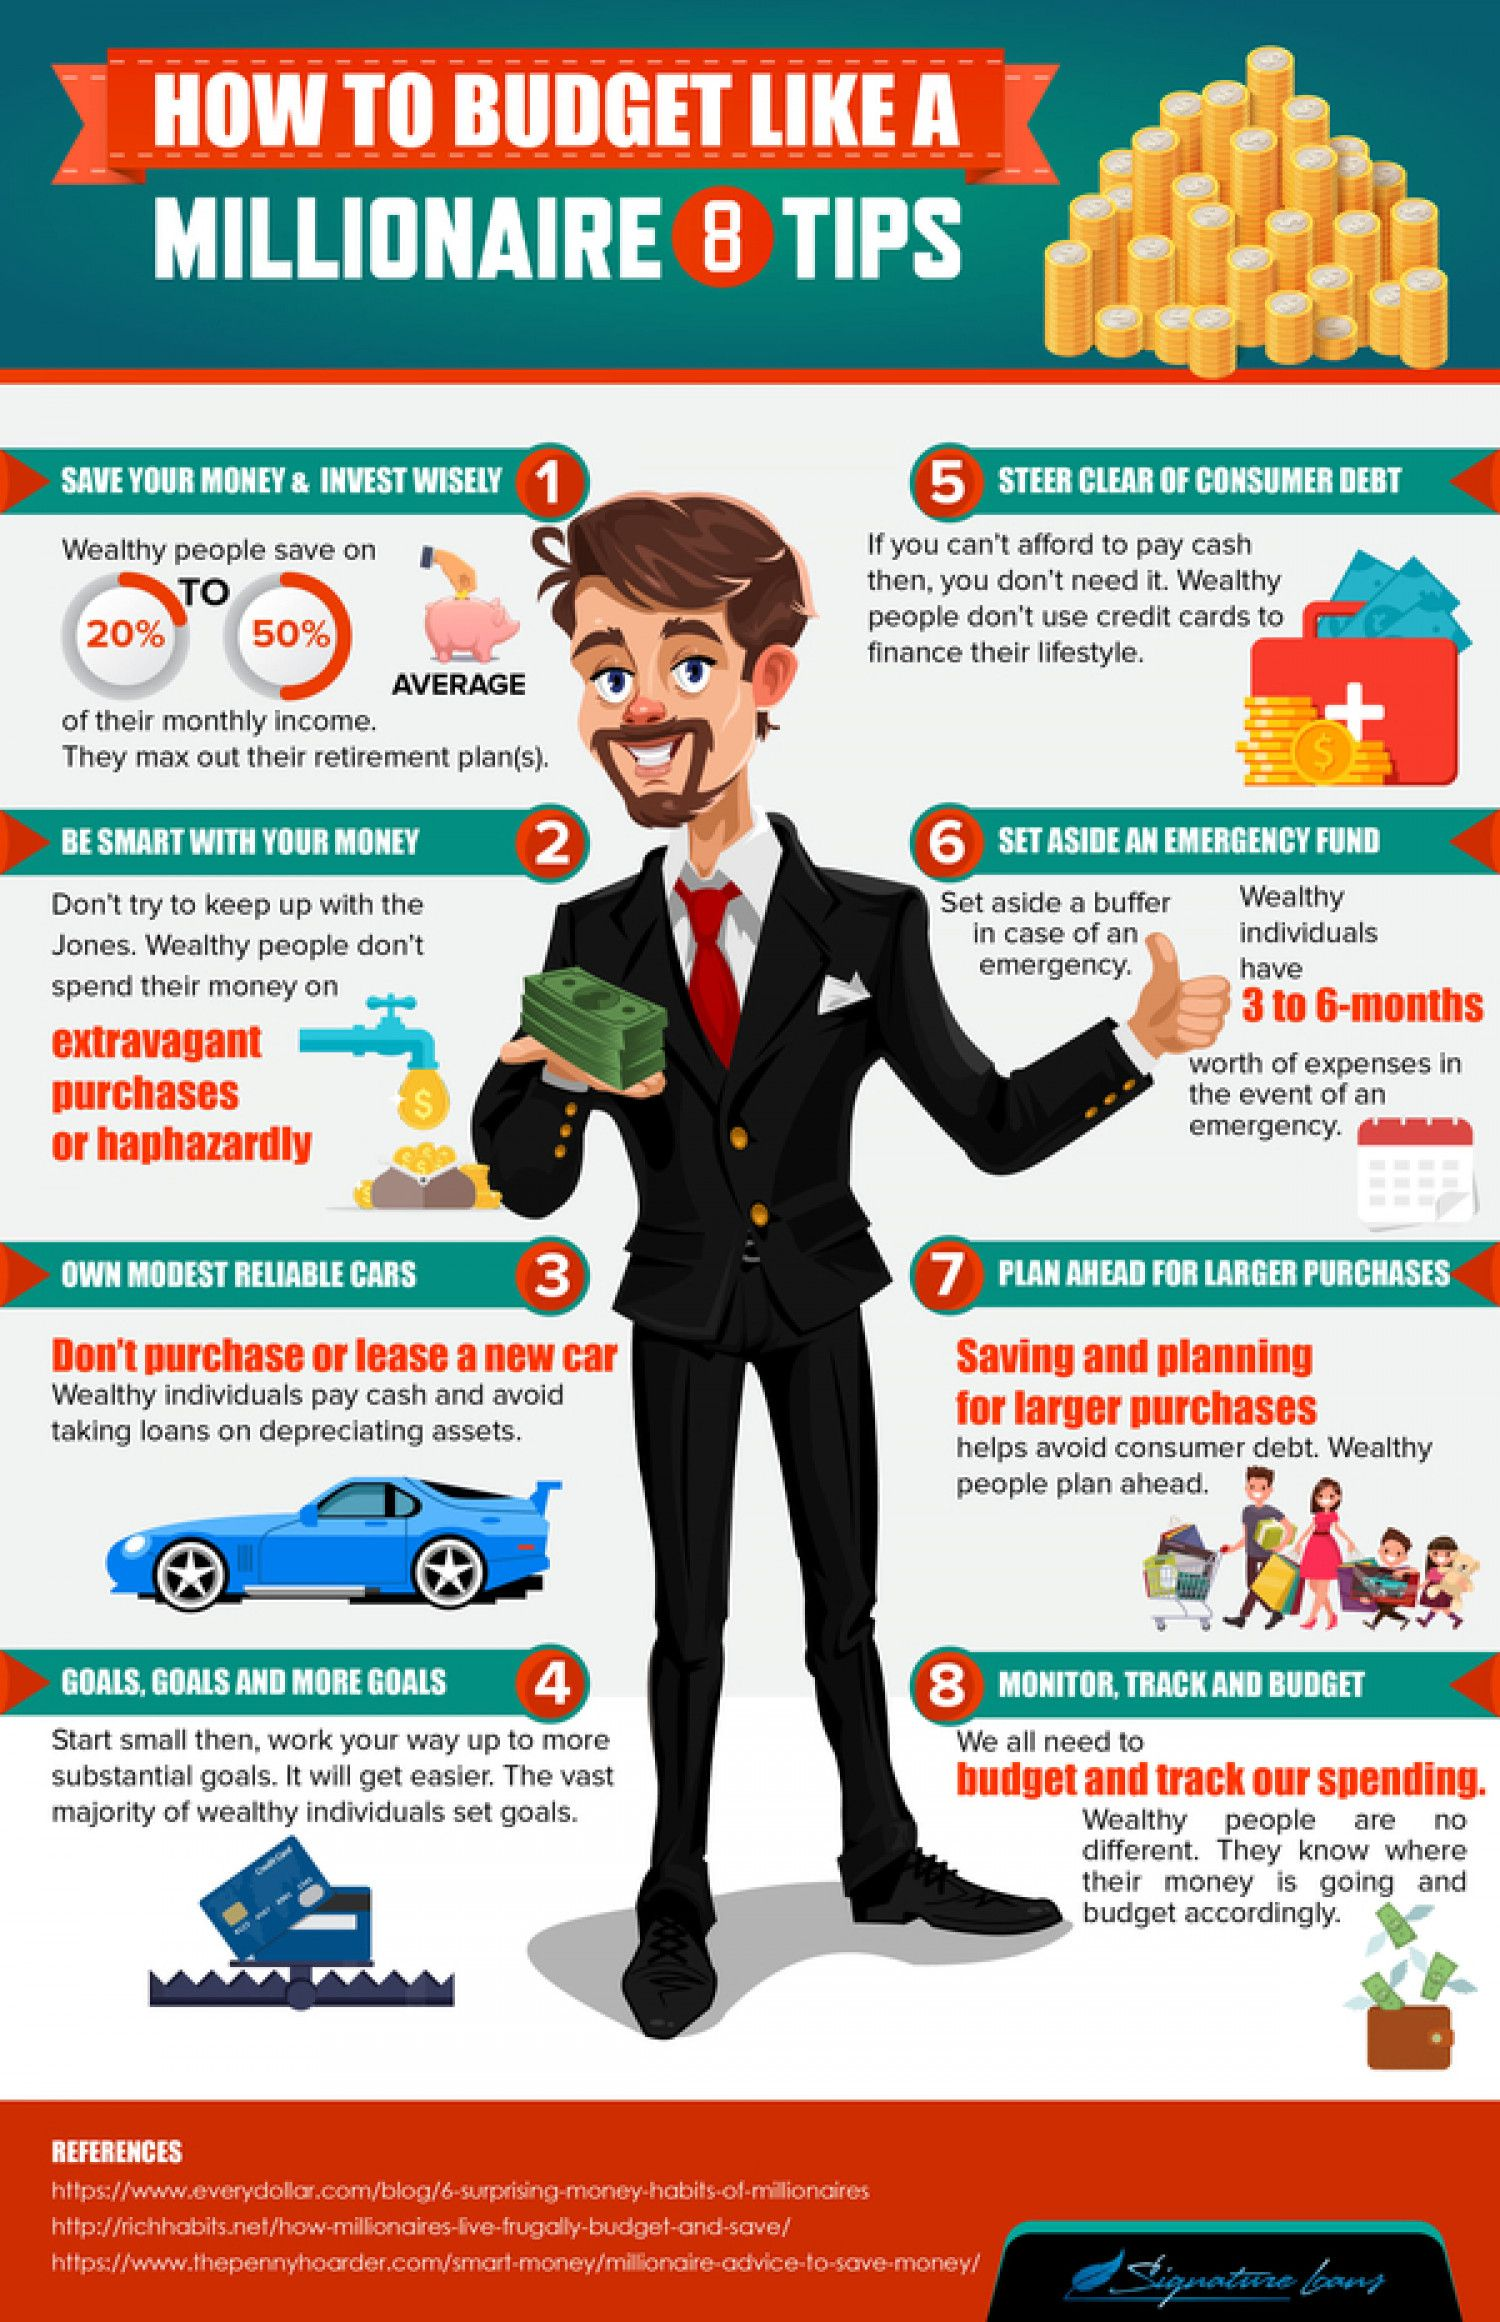 How To Budget Like A Millionaire 8 Tips